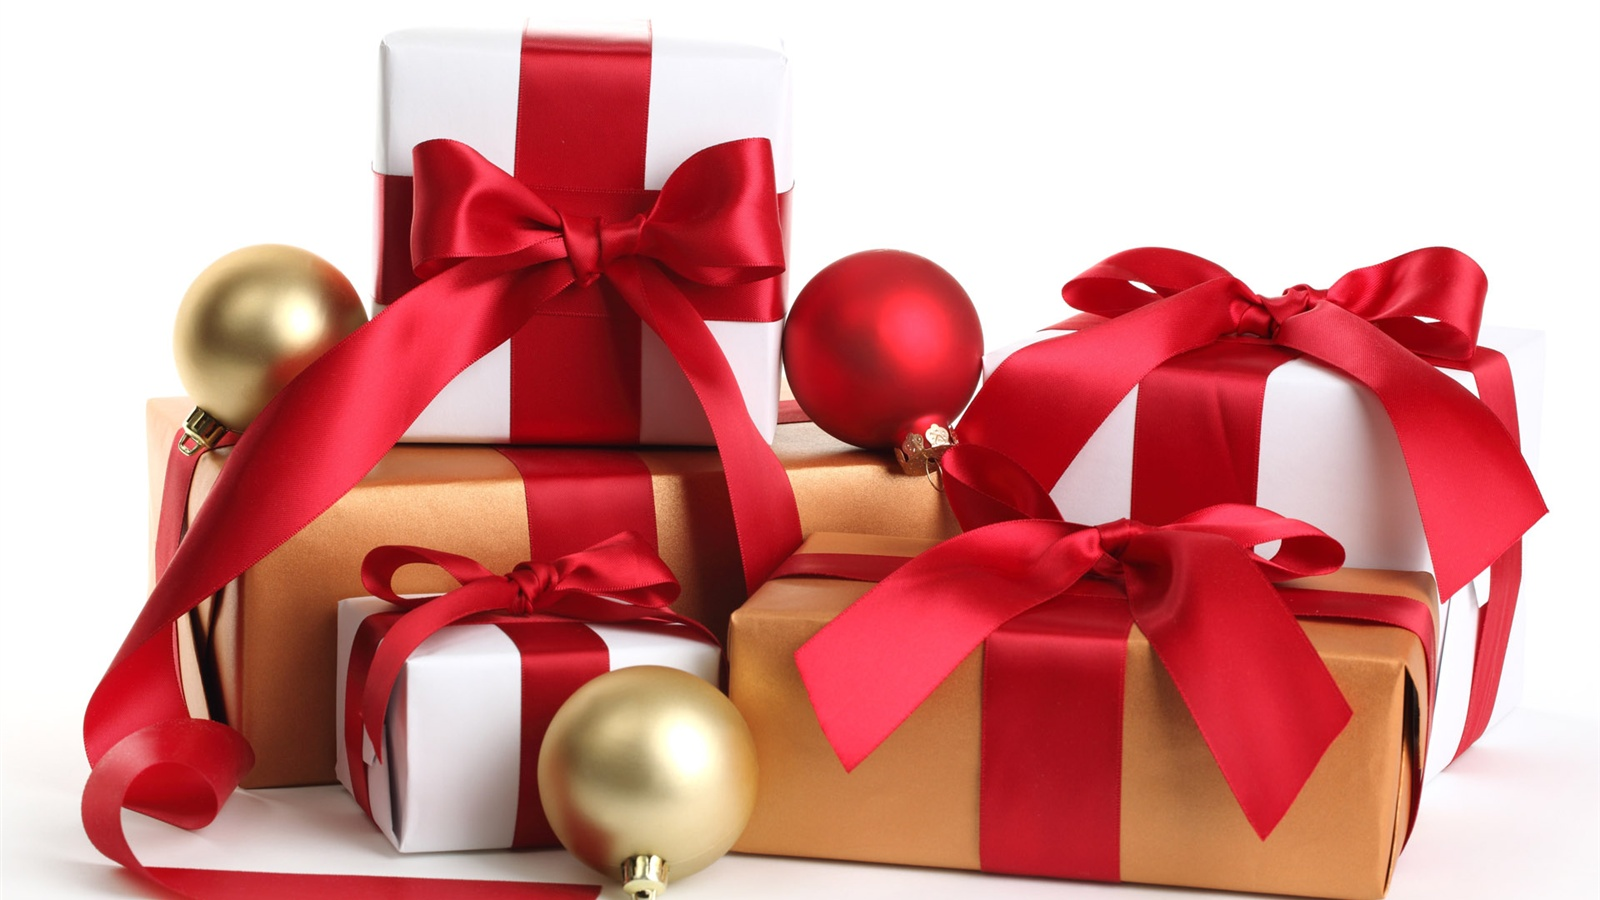 Boxing day openmatome httpsjast wallpaperwallpaper1600x9001111christmas gift packaged1600x900g negle Choice Image